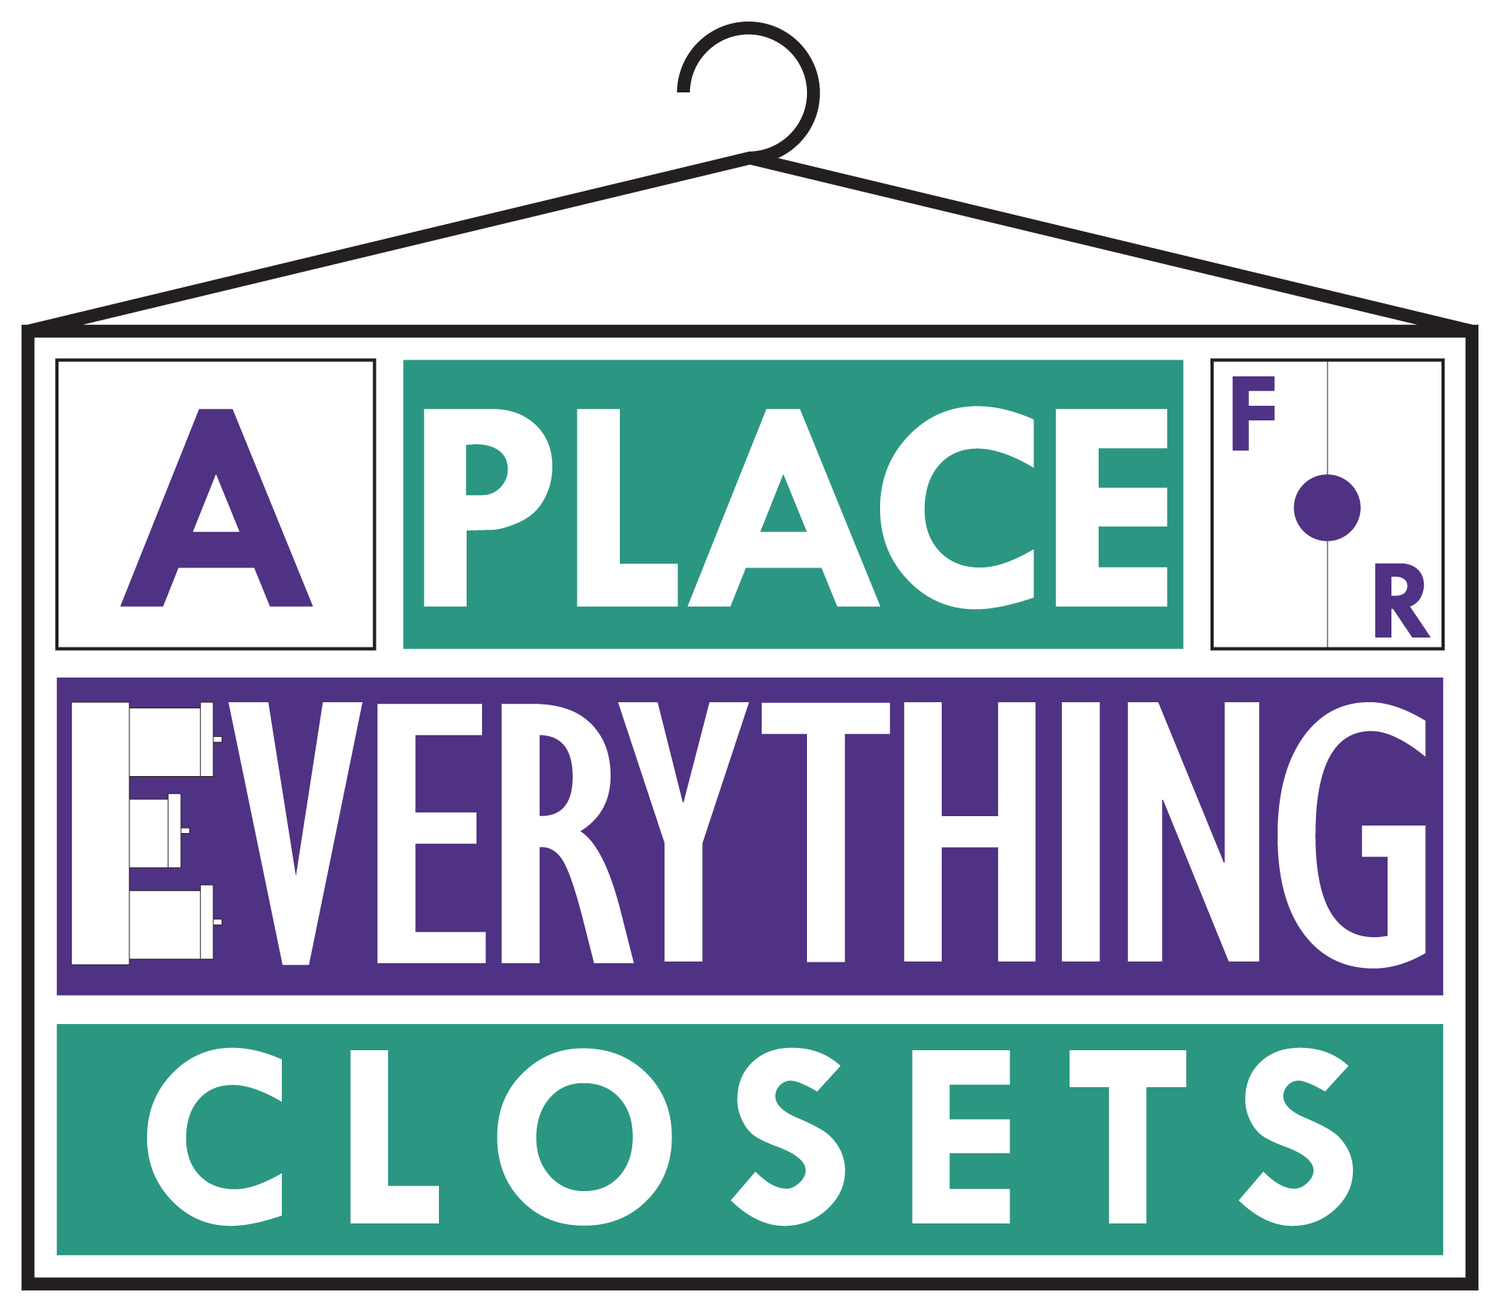 Custom Closets, Organizers & Home Storage-A Place for Everything Closets|Tri-Cities|Knoxville|TN|VA|NC